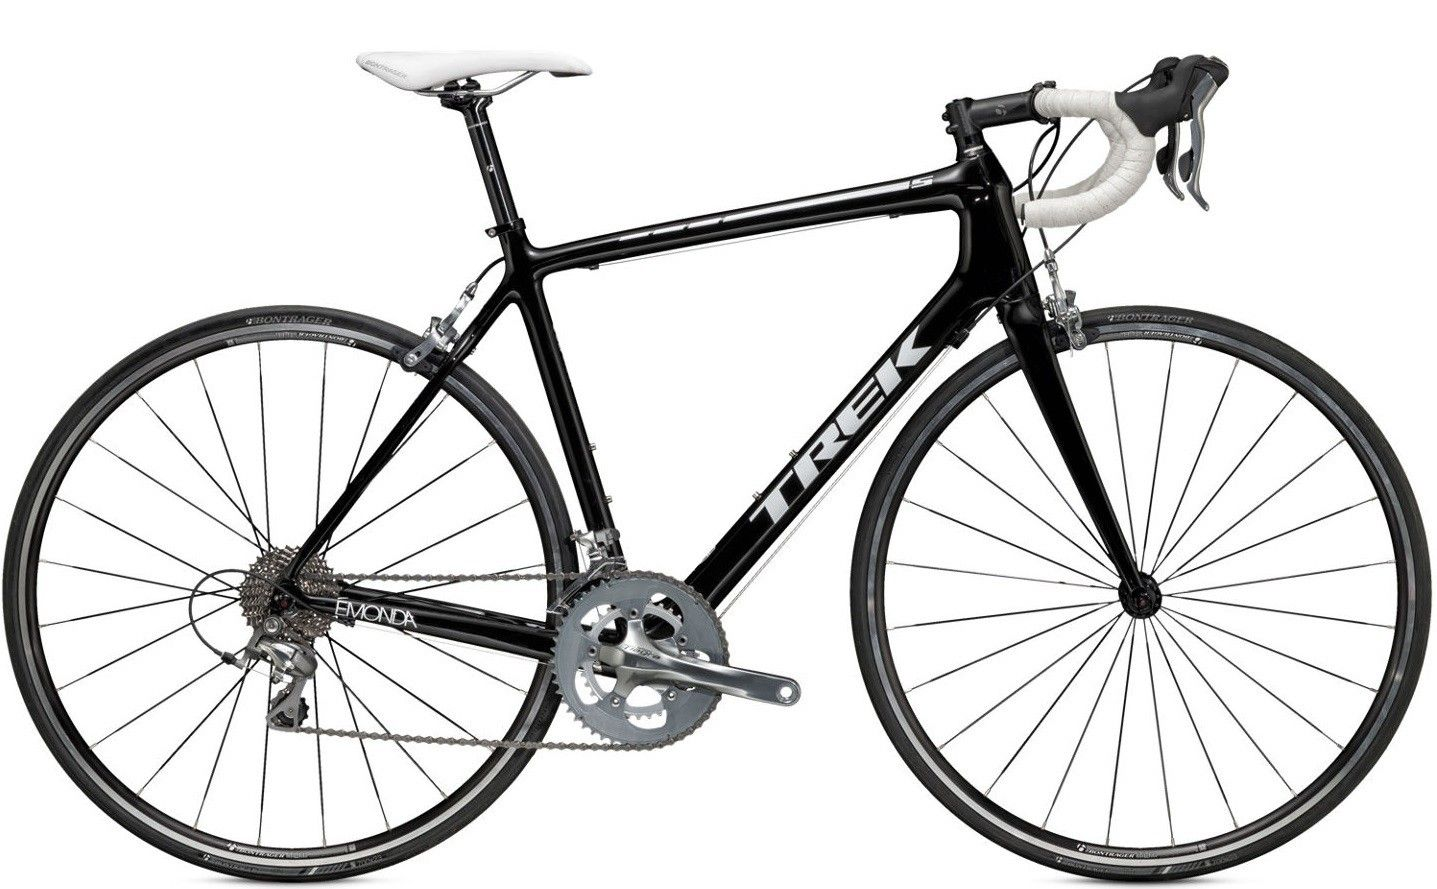 Every trek carbon and aluminum road bike is designed for best in class performance view our full line of lightweight aerodynamic road bikes shop now